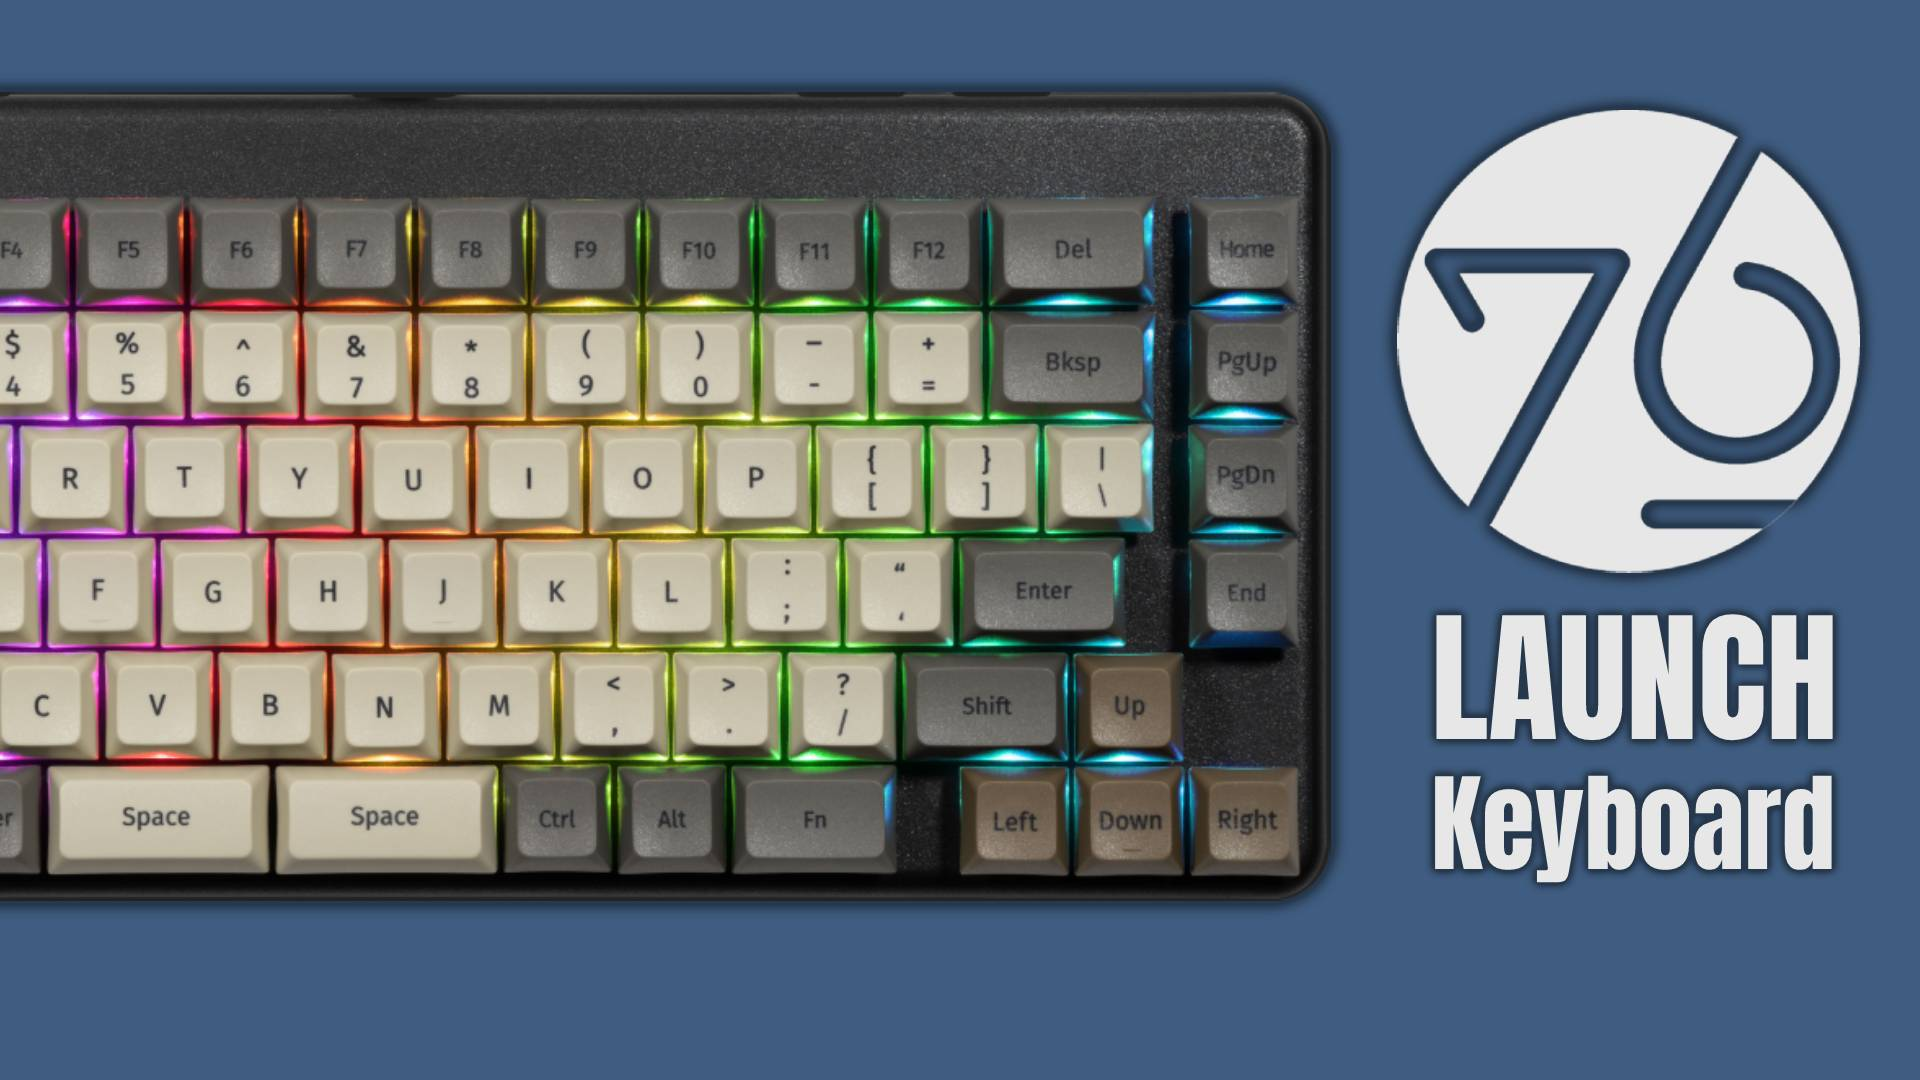 System76's New Launch Keyboard With Configurable Layers